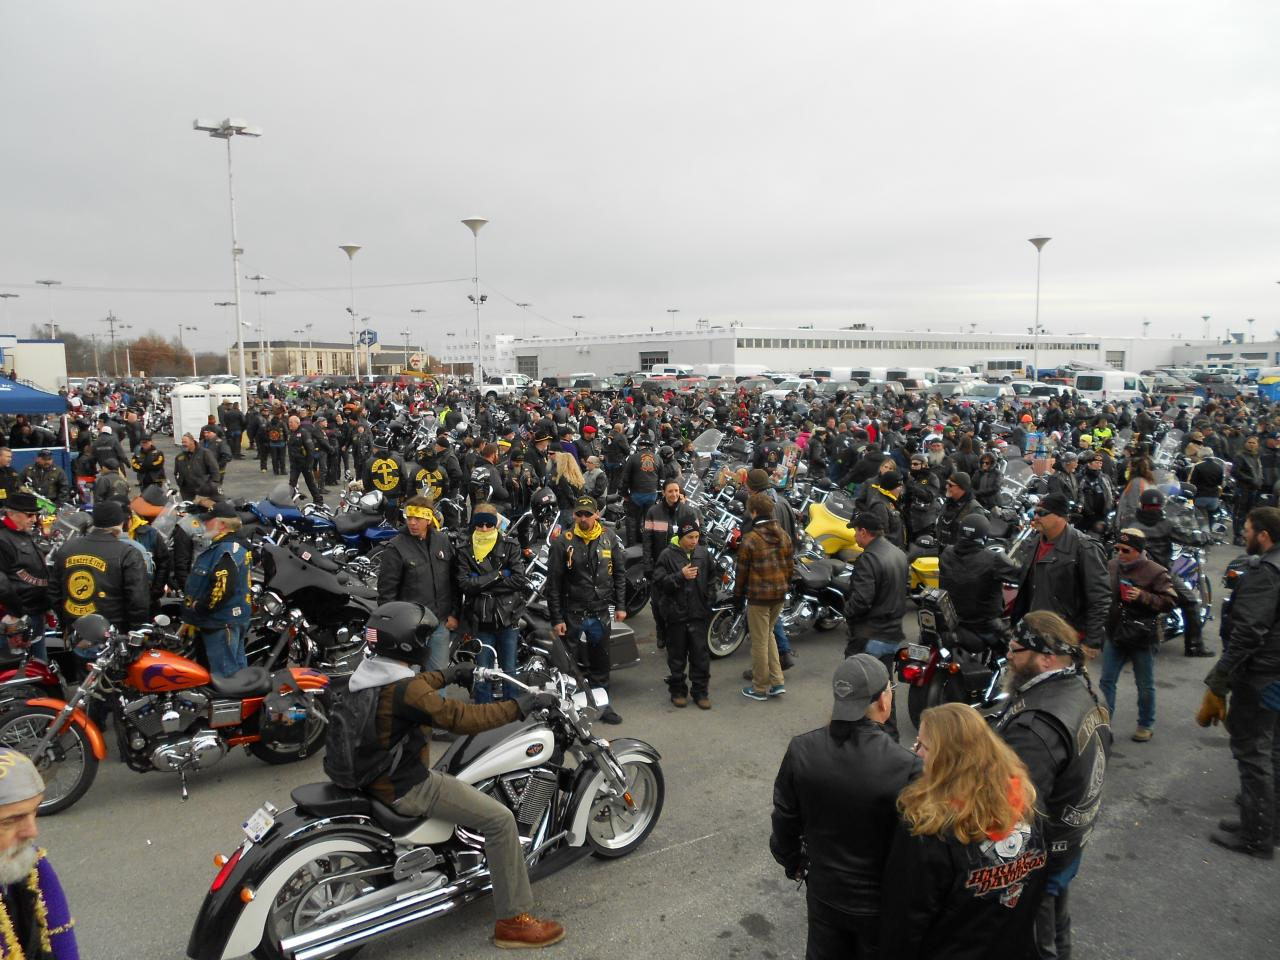 2014 Toys For Tots Springfield Mo 46 Degrees And Overcast